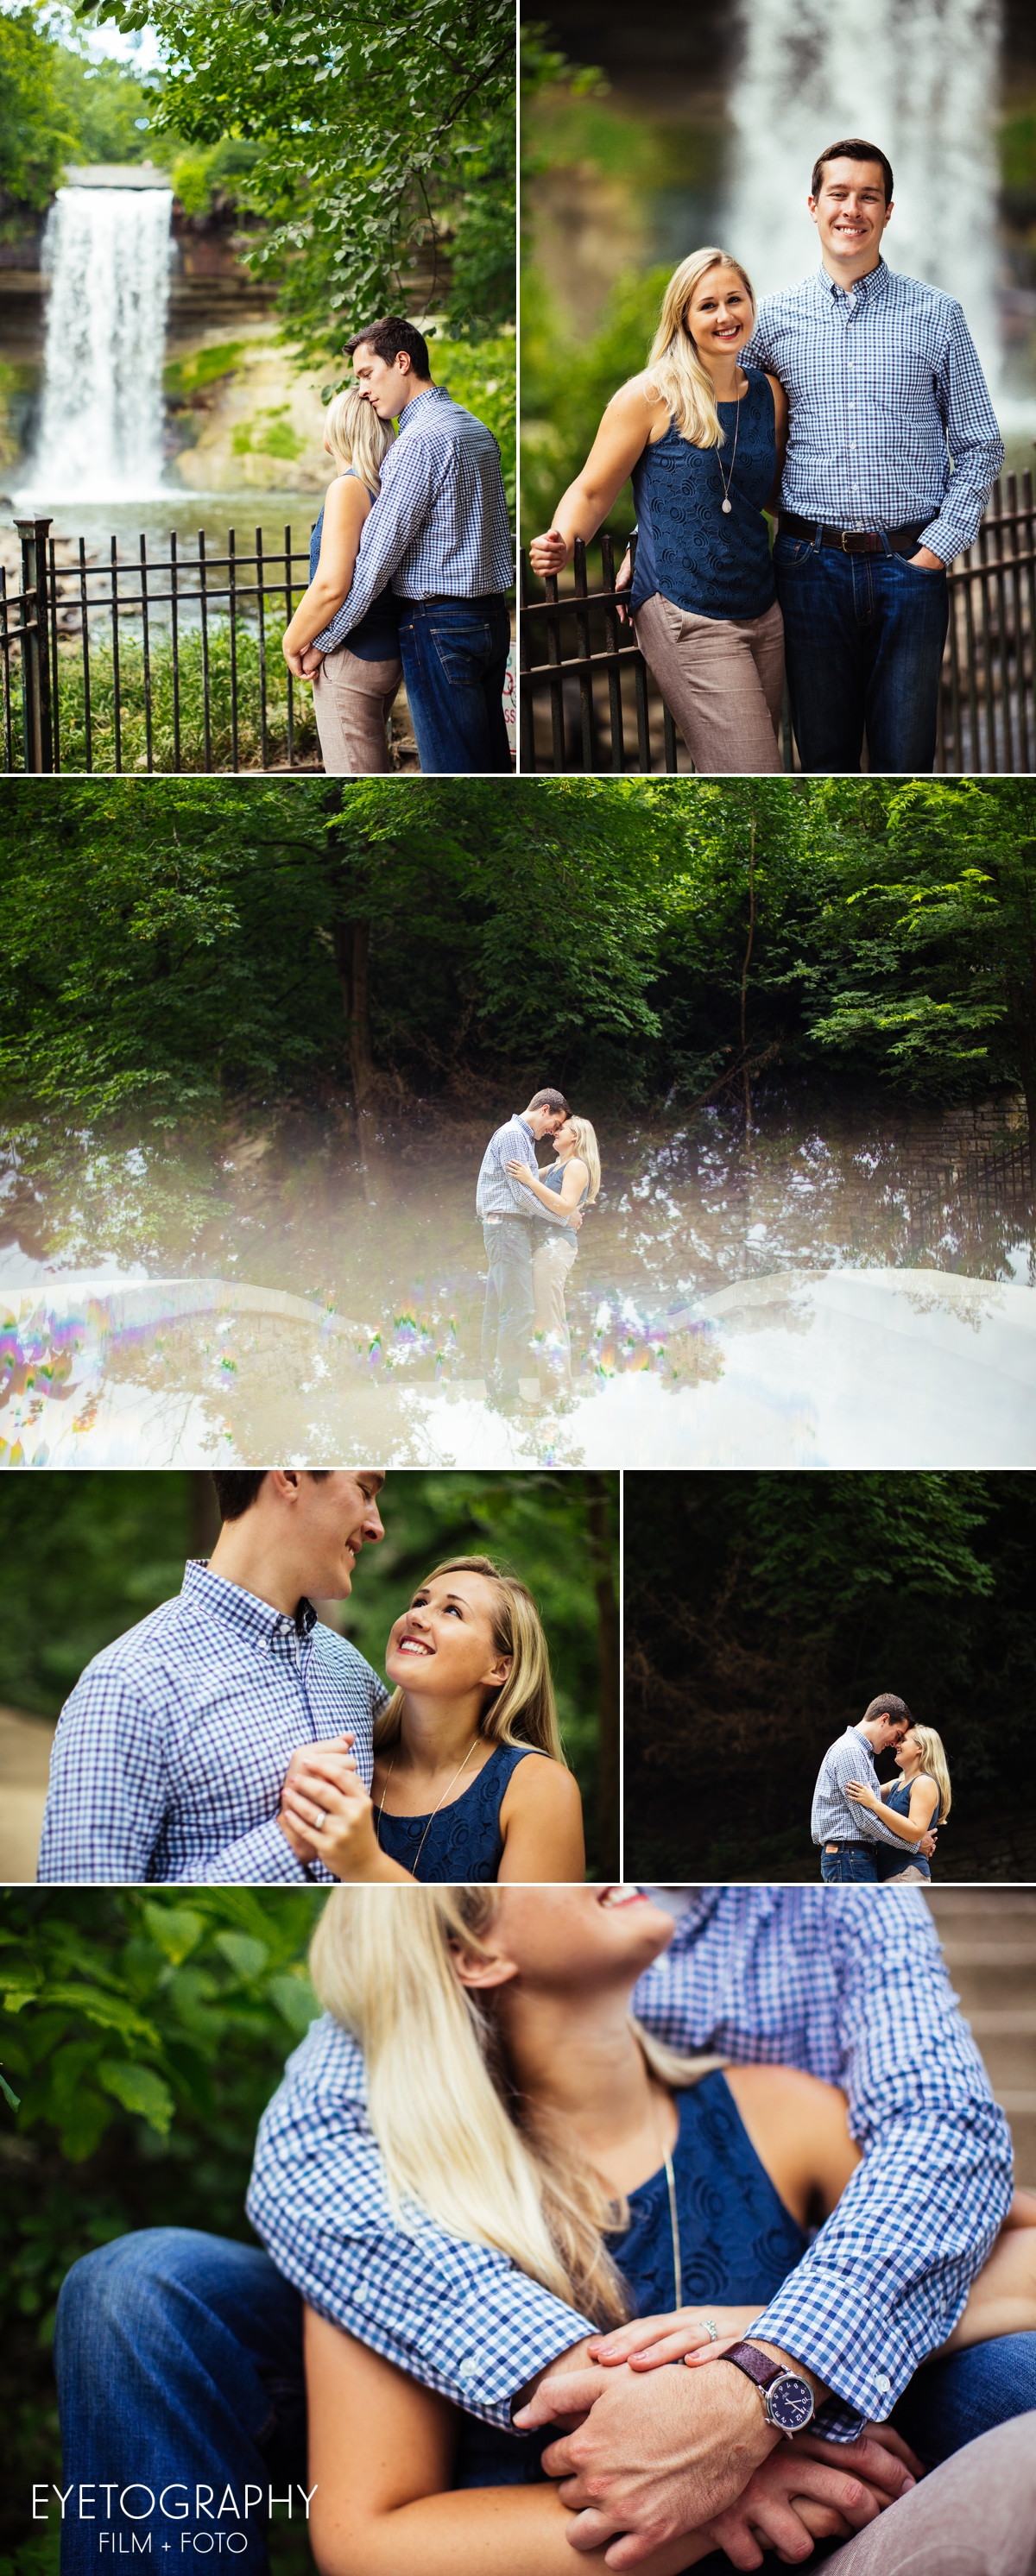 Minnehaha Falls Park Engagement Photography | Eyetography Film + Foto | Anna and Garrett 4